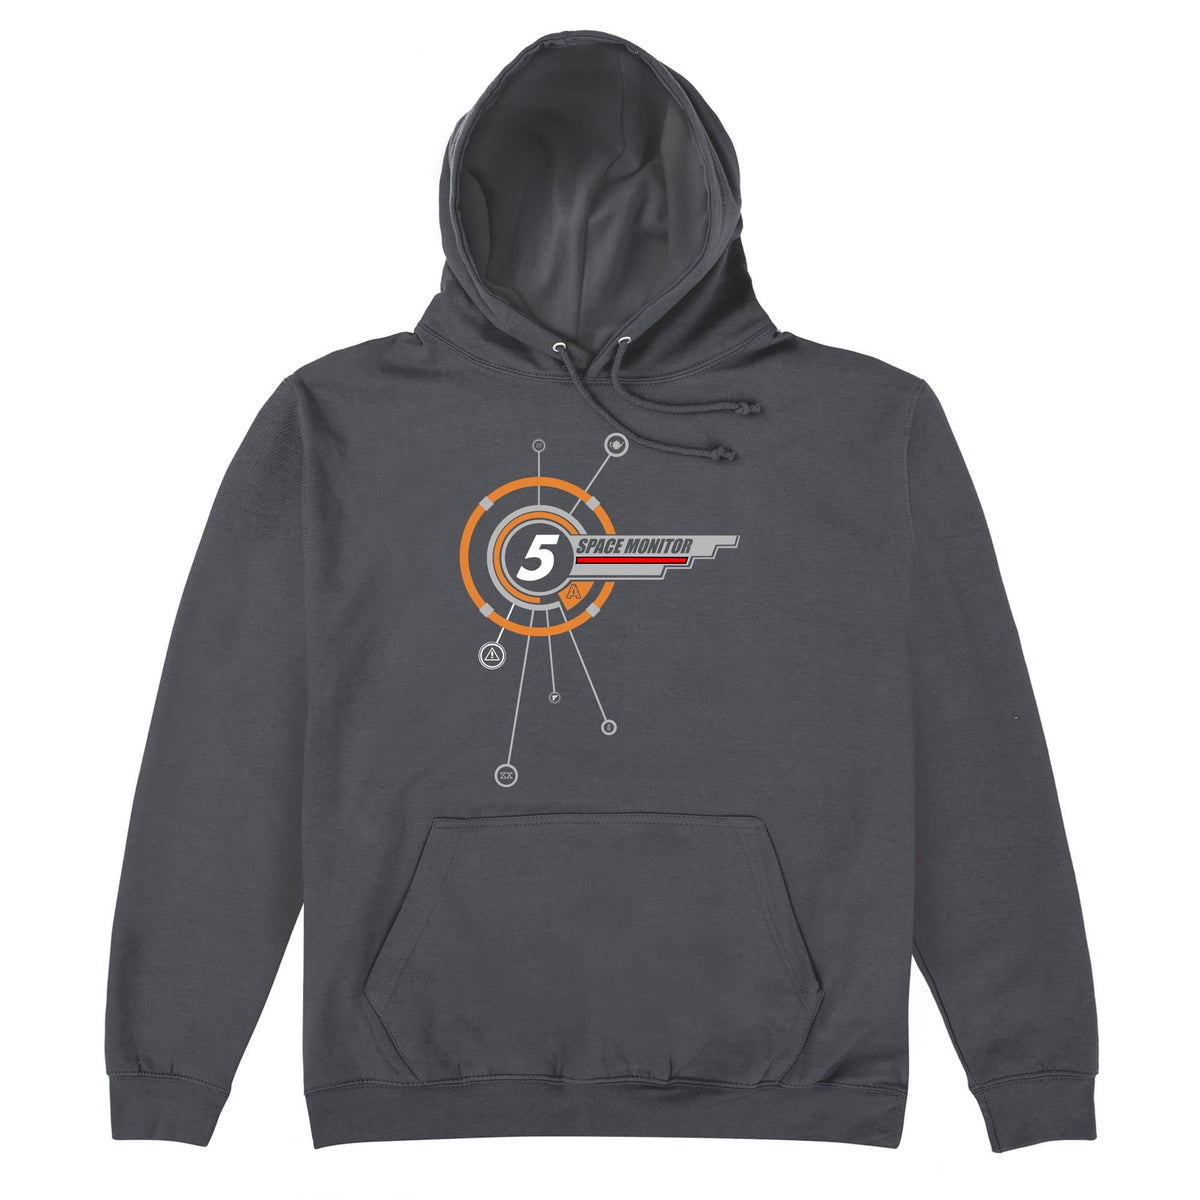 Thunderbird 5 Inspired Hoodie - The Gerry Anderson Store